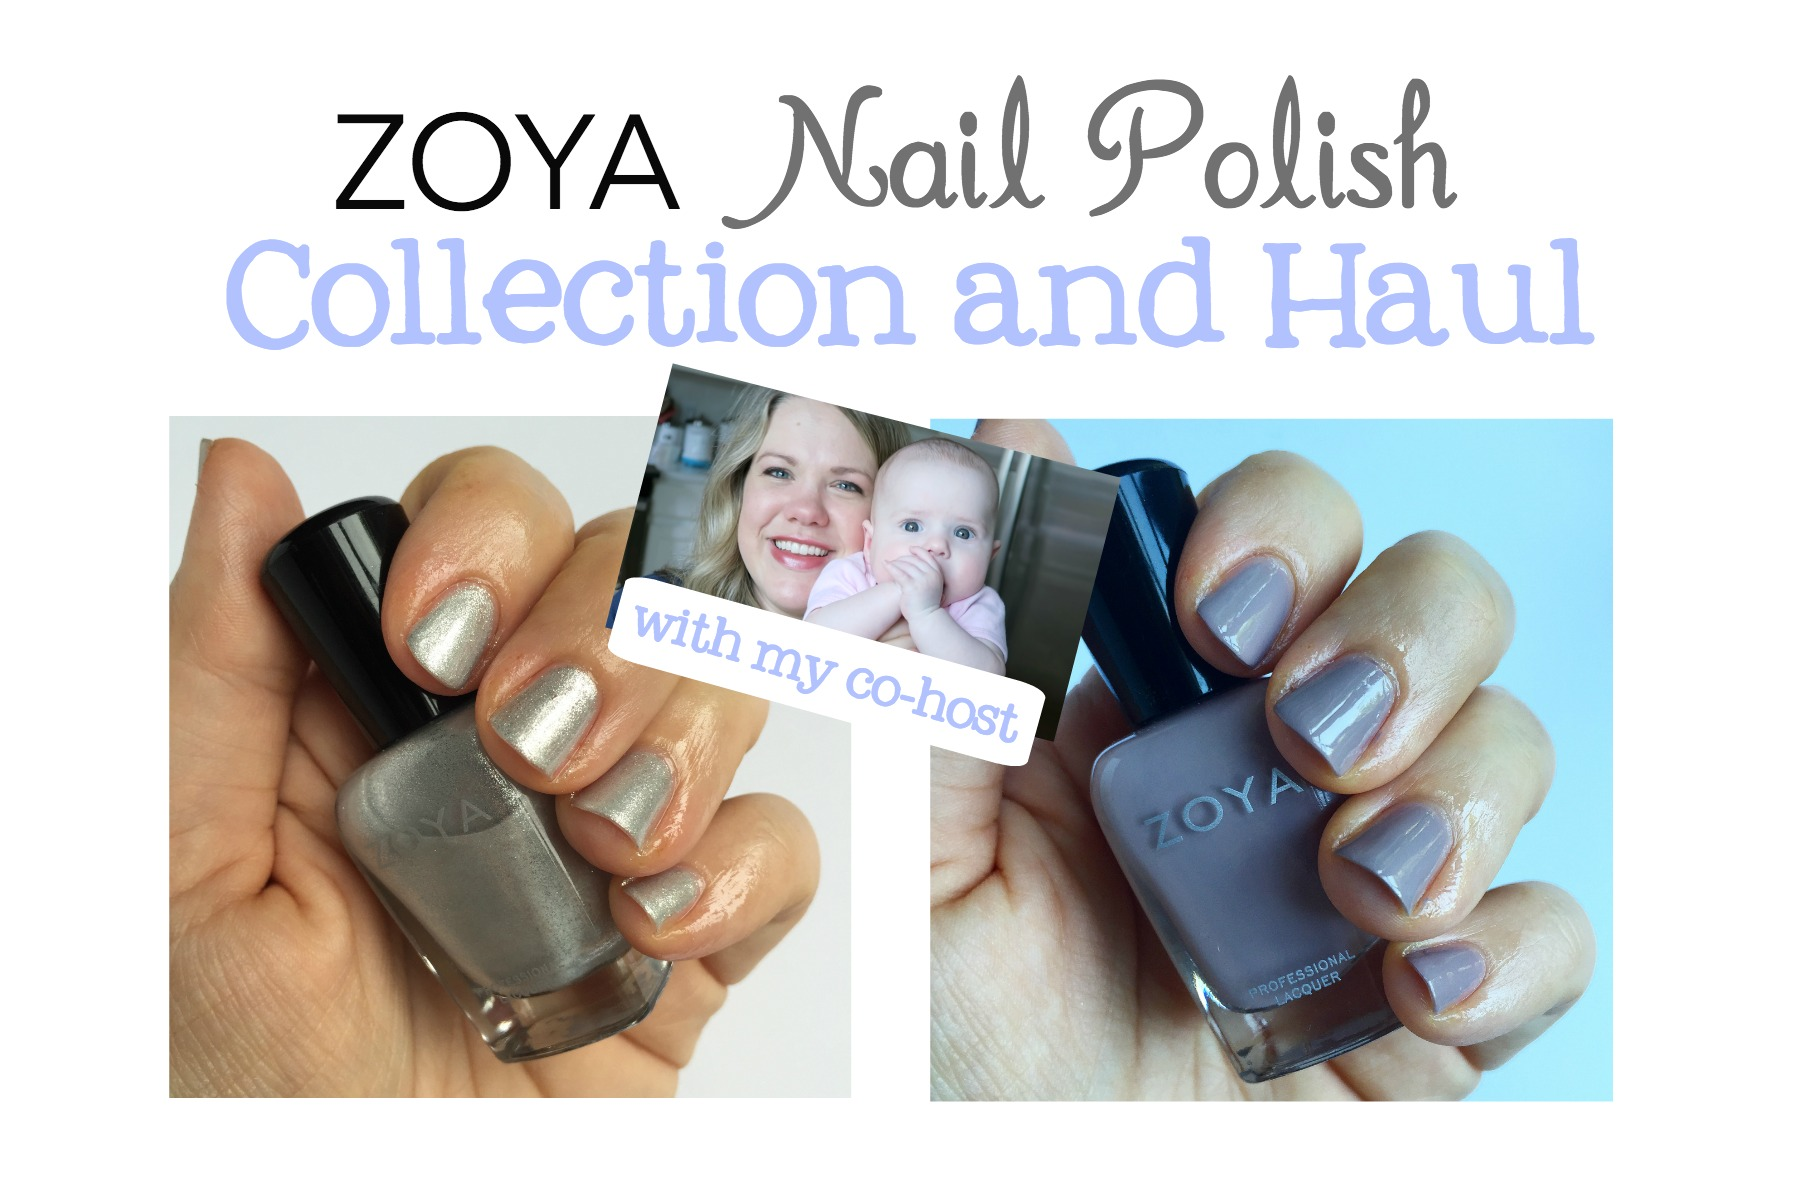 Zoya Nail Polish Collection and Haul - A Pinch of Healthy